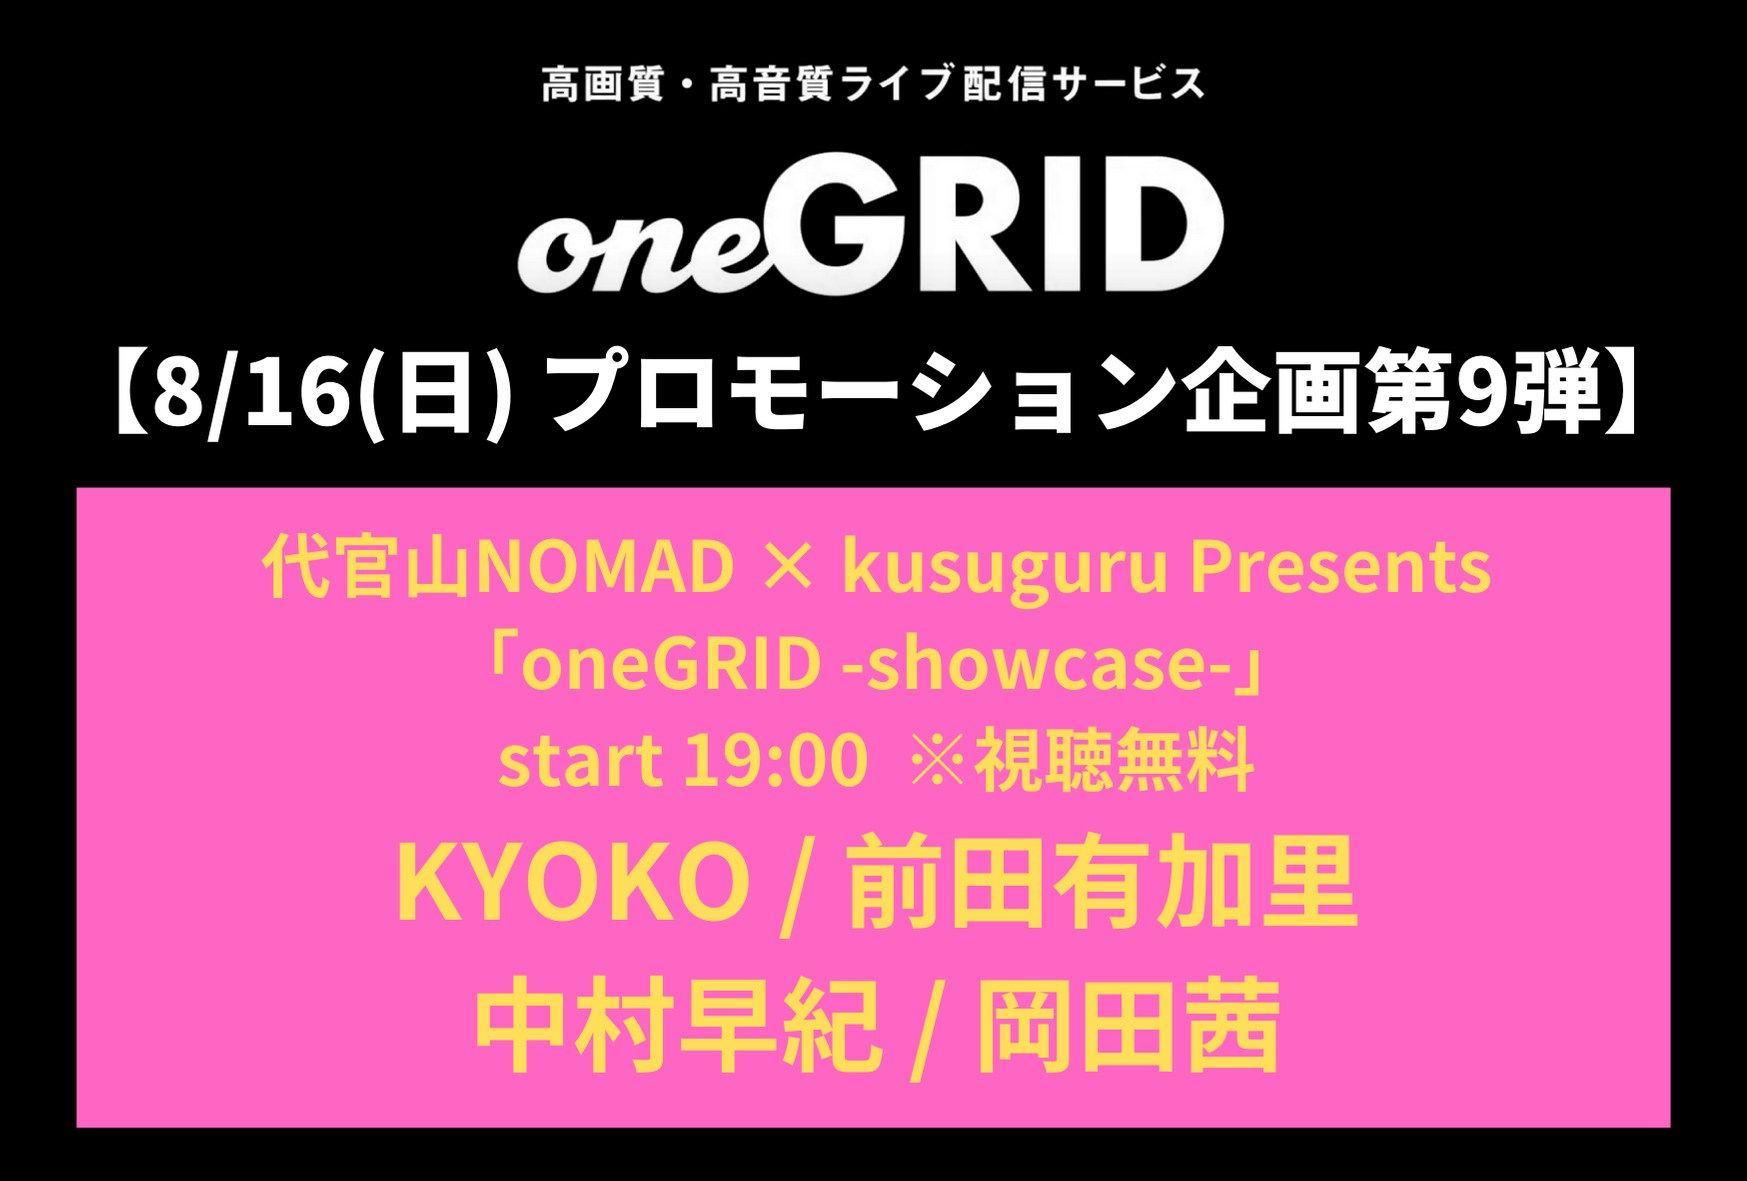 「oneGRID -showcase-」